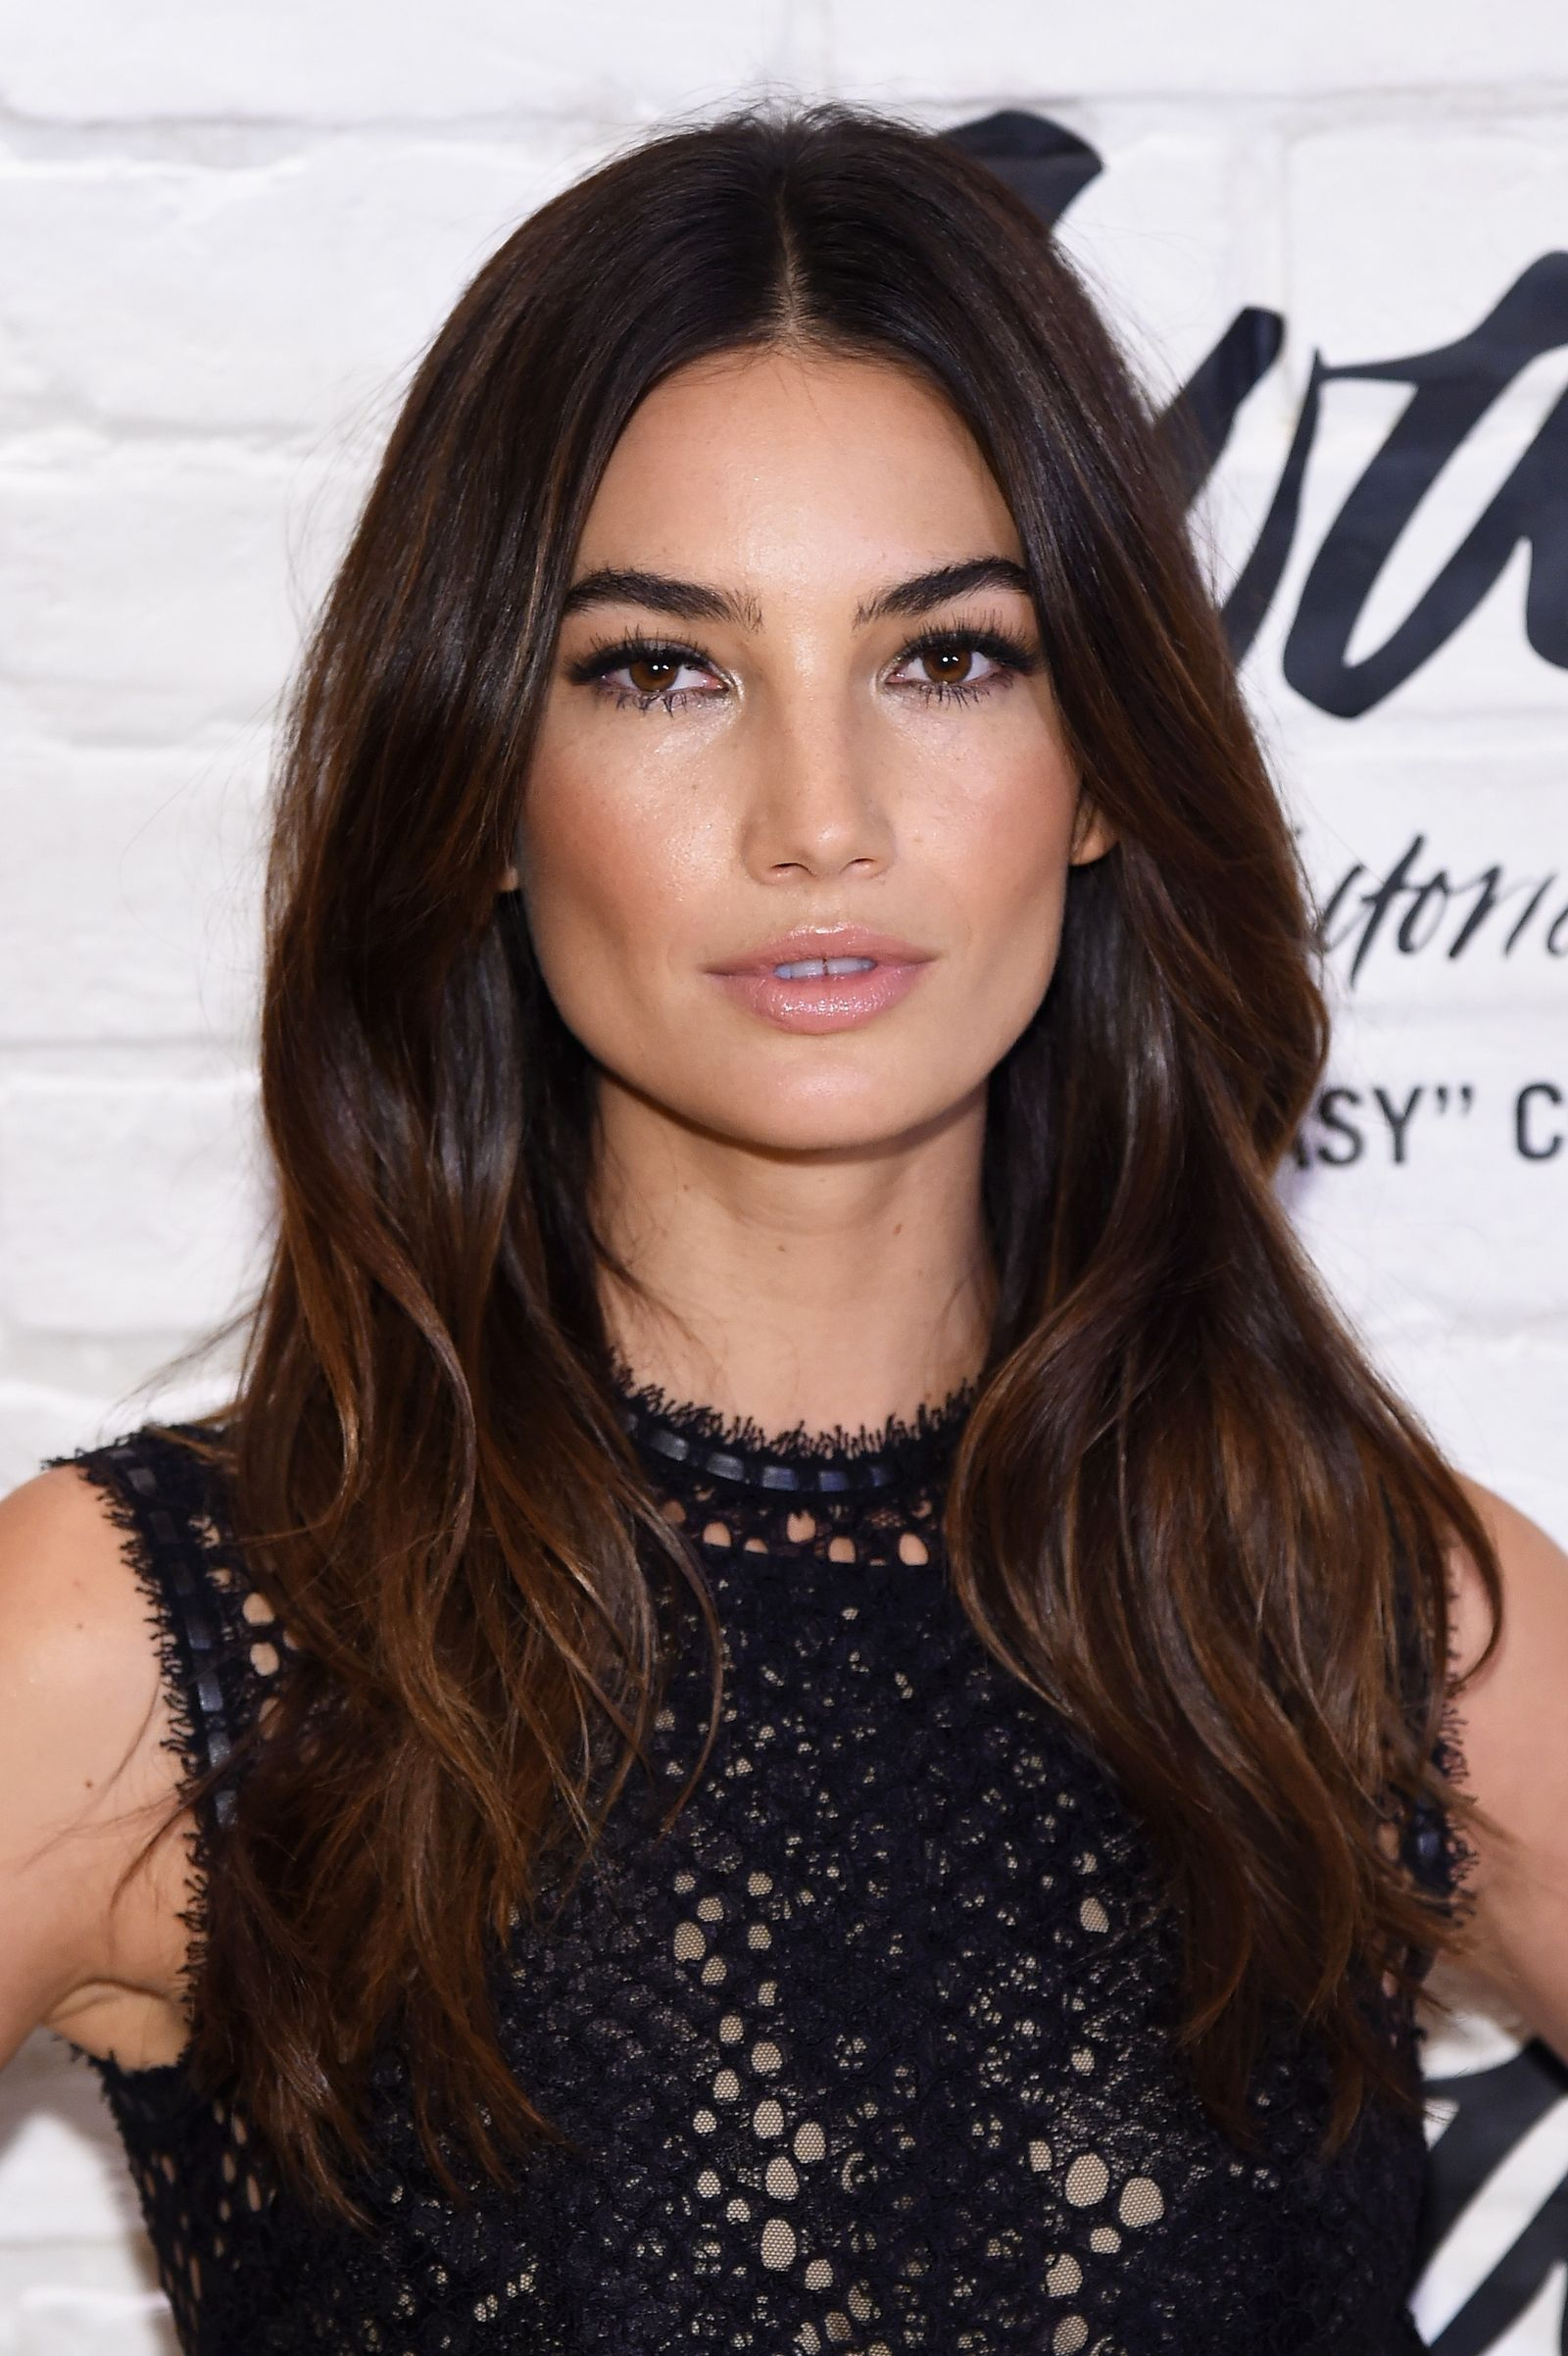 the 13 best hairstyles for square faces | shoulder length, face and